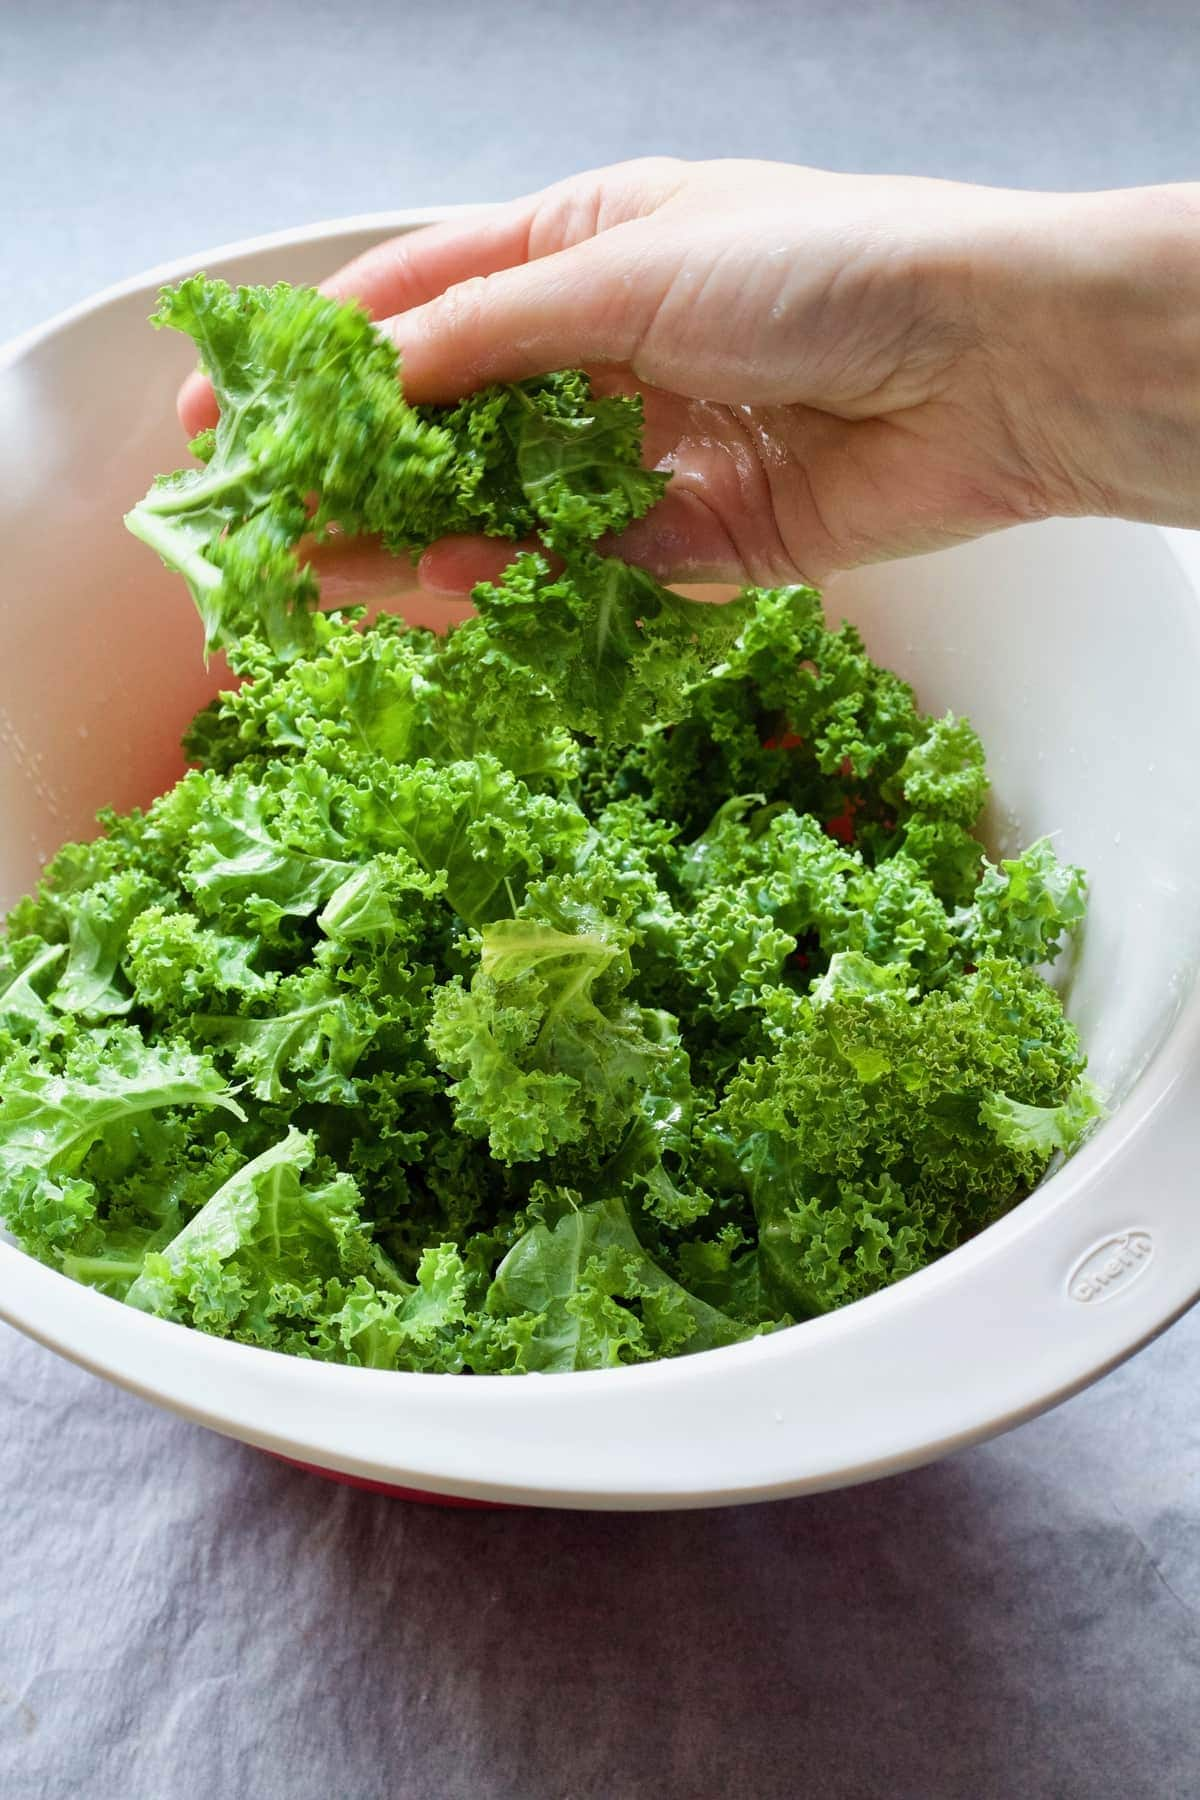 Massaging oil into kale leaves.